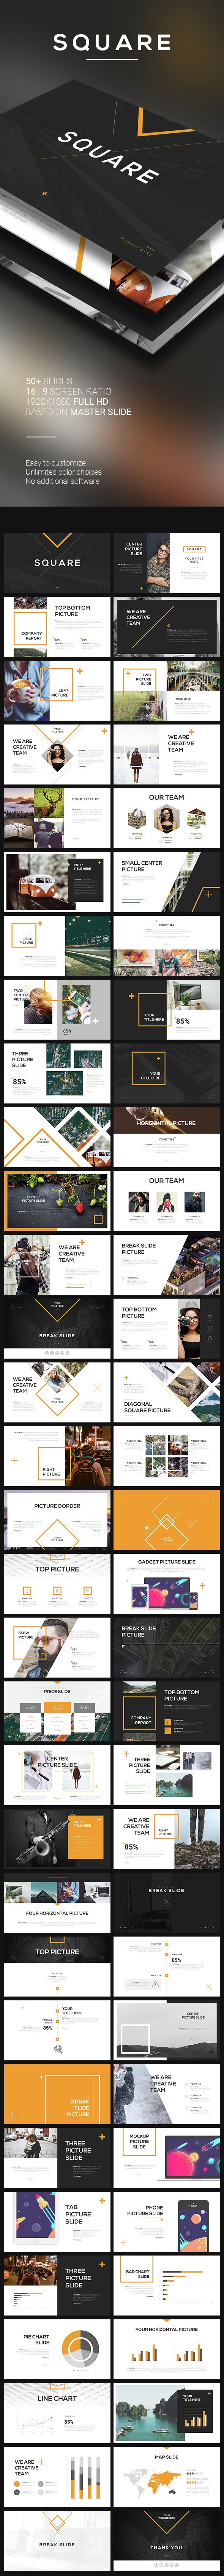 Square PowerPoint Template | Template, Squares and Presentation ...